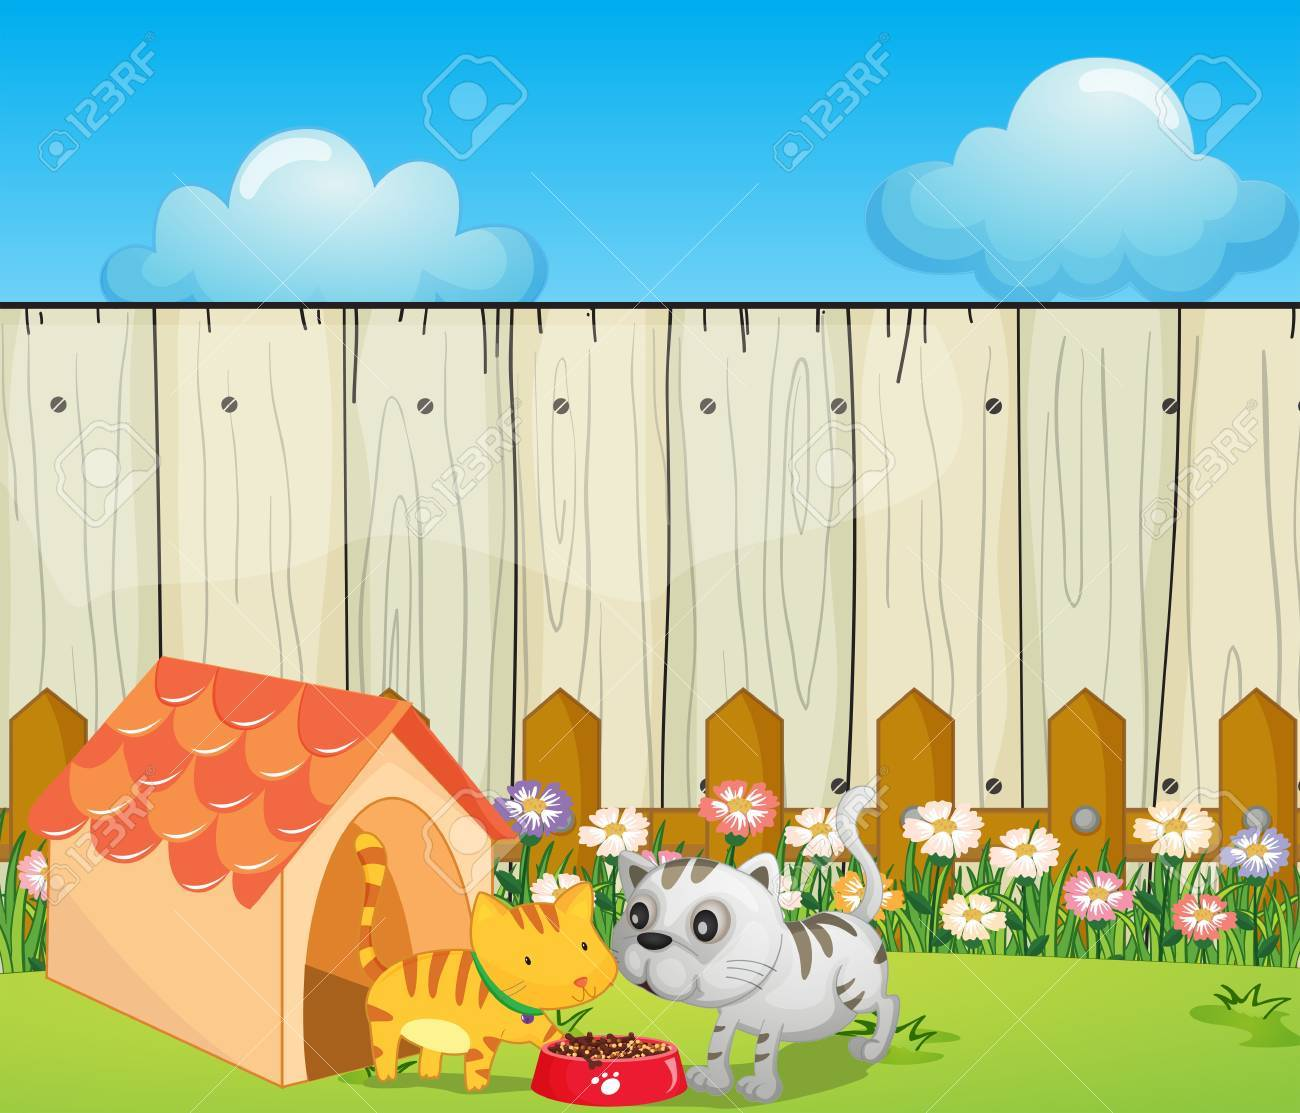 Illustration of a pethouse inside the fence Stock Vector - 17918468